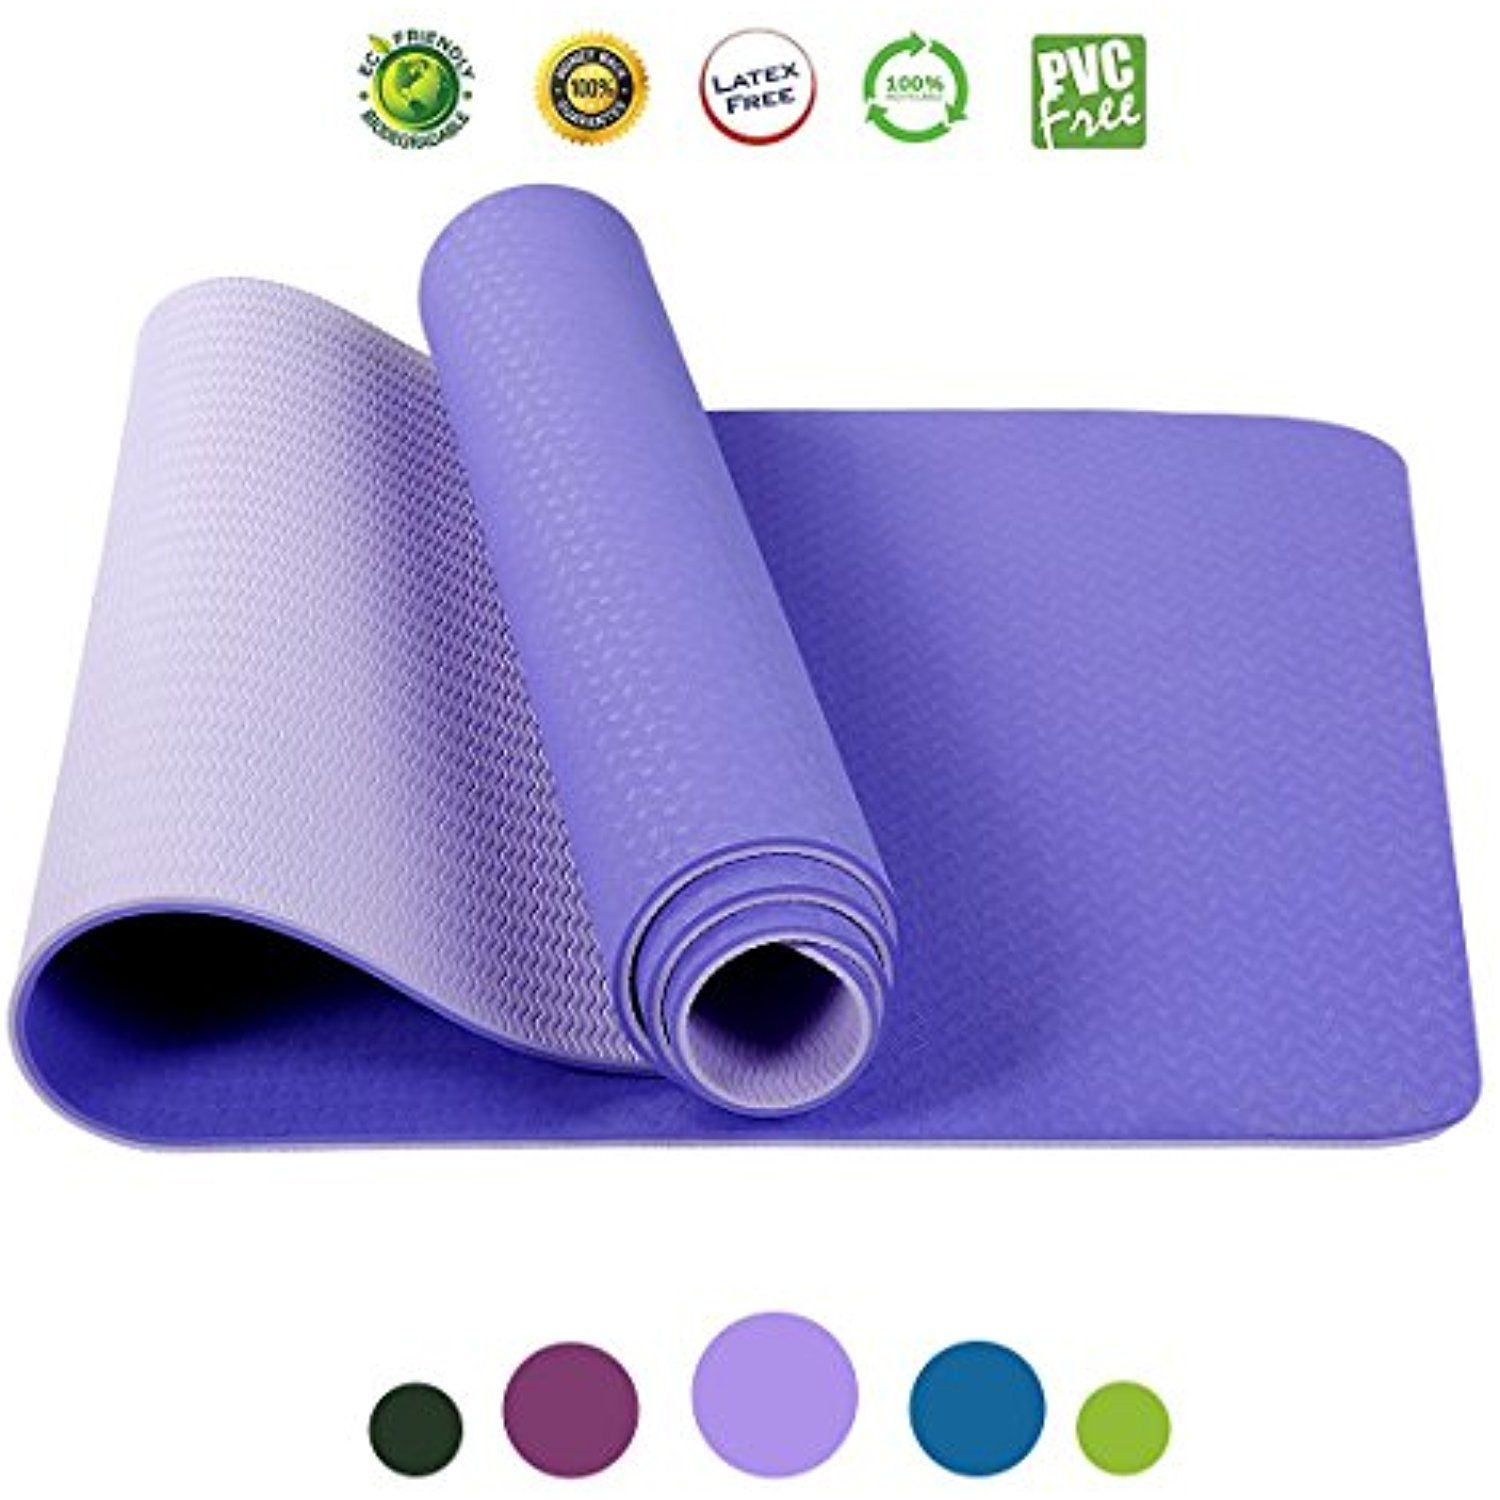 stretch leg pilates out workout band bendall work fitness bent brittany resistance mat knee single mats